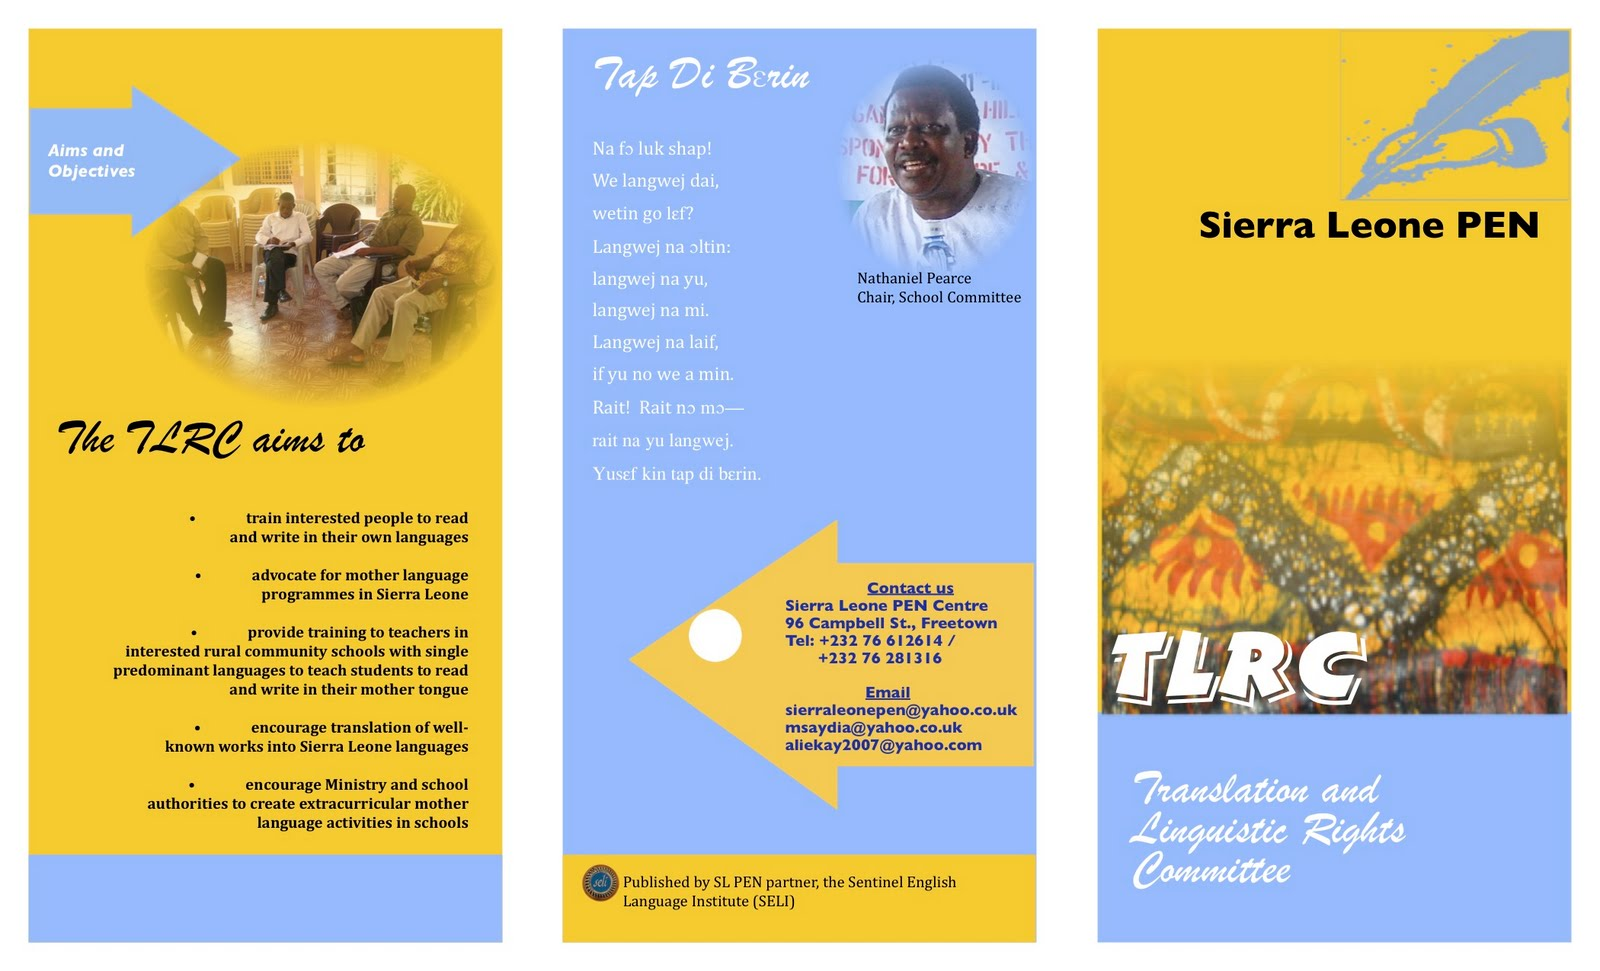 Seli Hosts And Chairs The Translation Linguistic Rights Committee Of Sierra Leone Pen Has Just Developed This Brochure Which Expresses